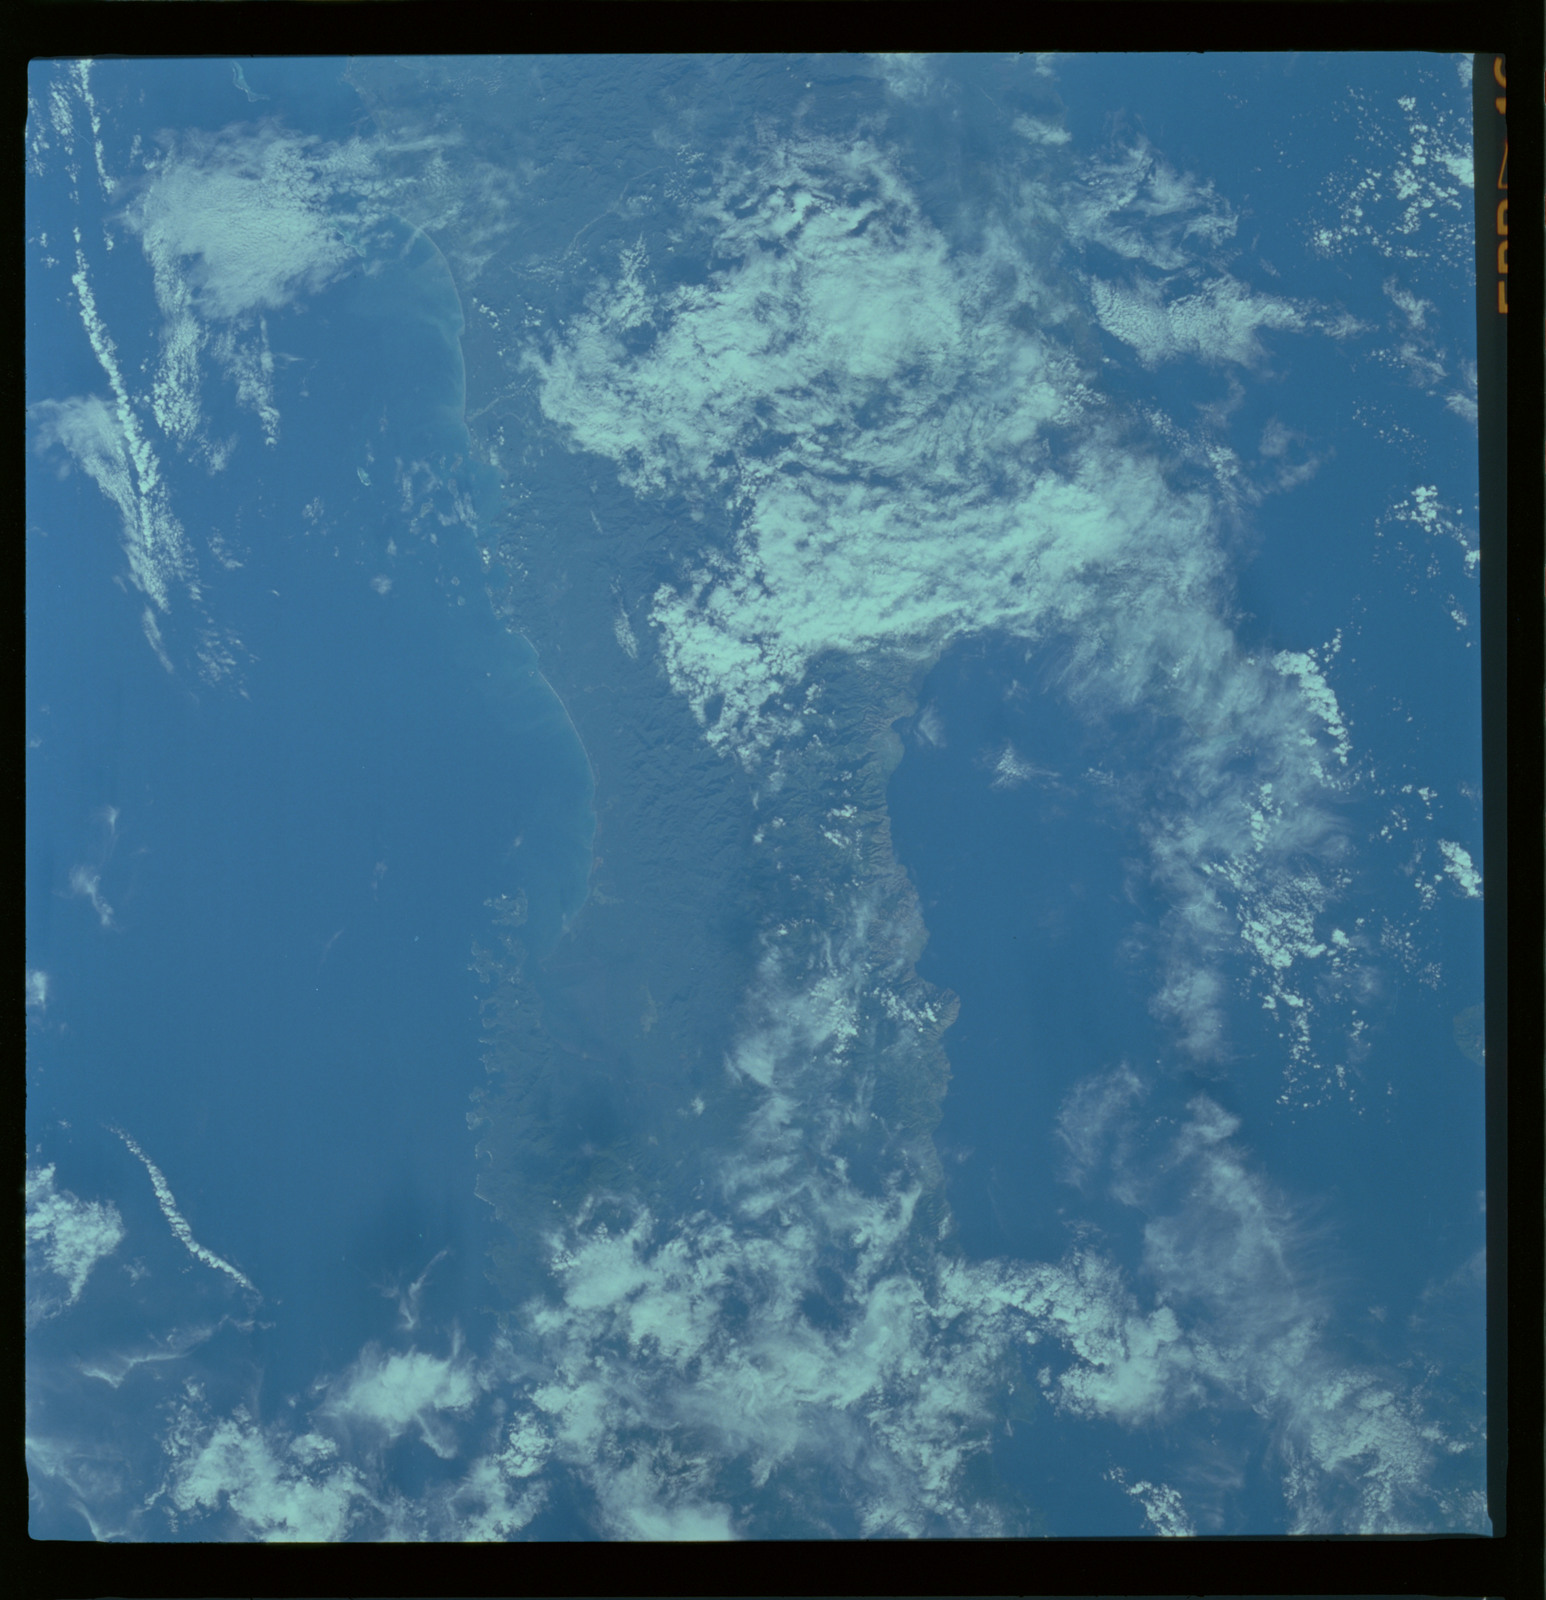 61A-487-010 - STS-61A - STS-61A ESA earth observations